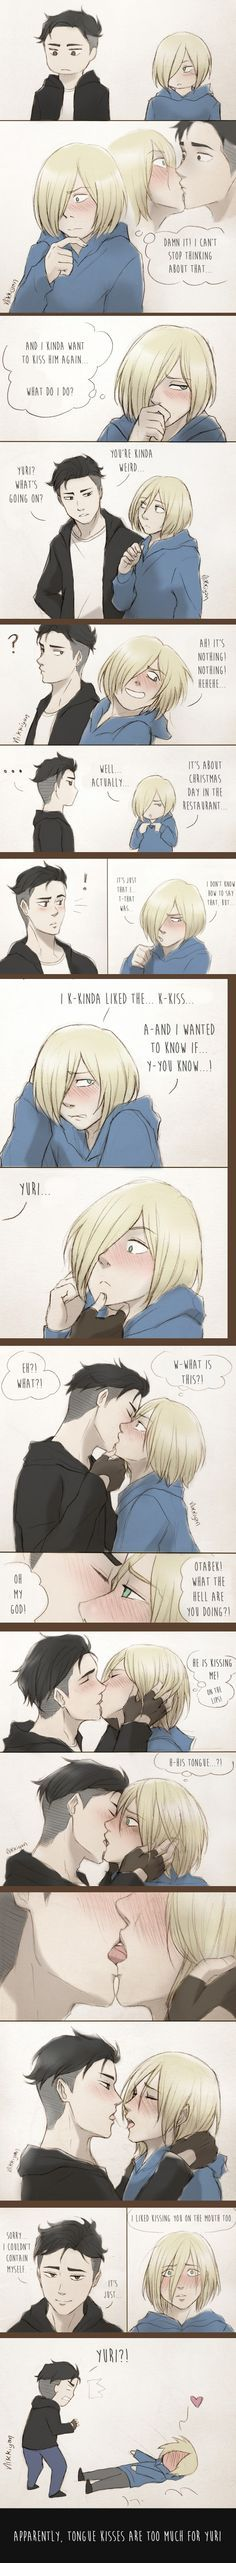 http://nikkiyan.tumblr.com/post/155946654032/french-kisses-are-too-much-for-yuri-part-2-of-this OtaYuri Christmas Kiss~part2